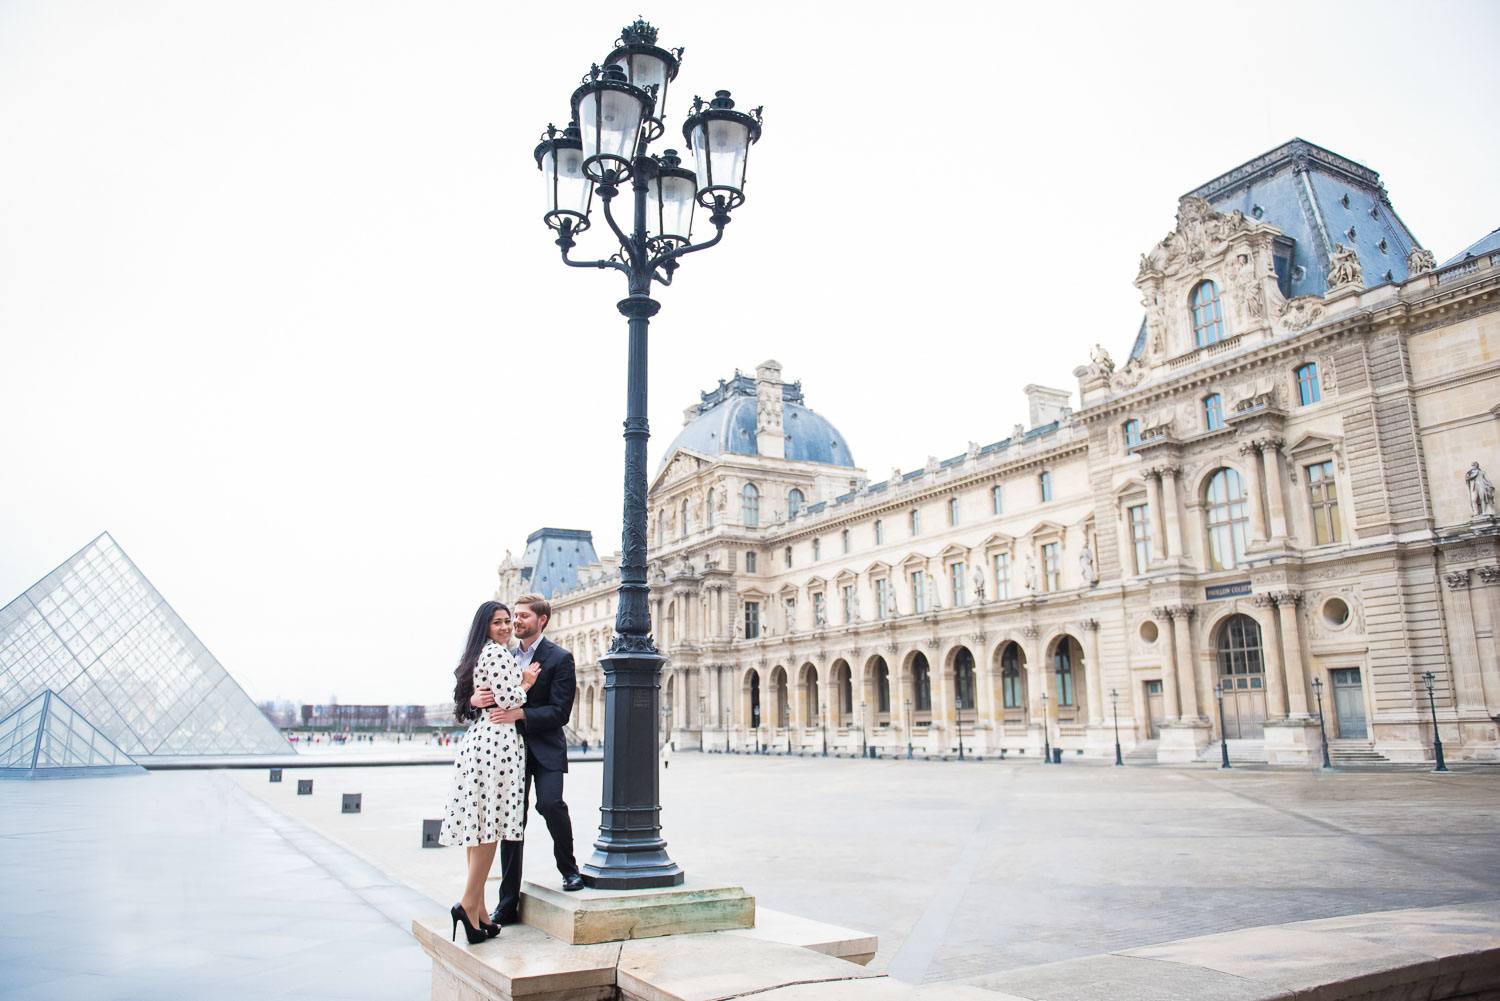 Copy of Copy of Paris photographer for engagement photo session at the Louvre